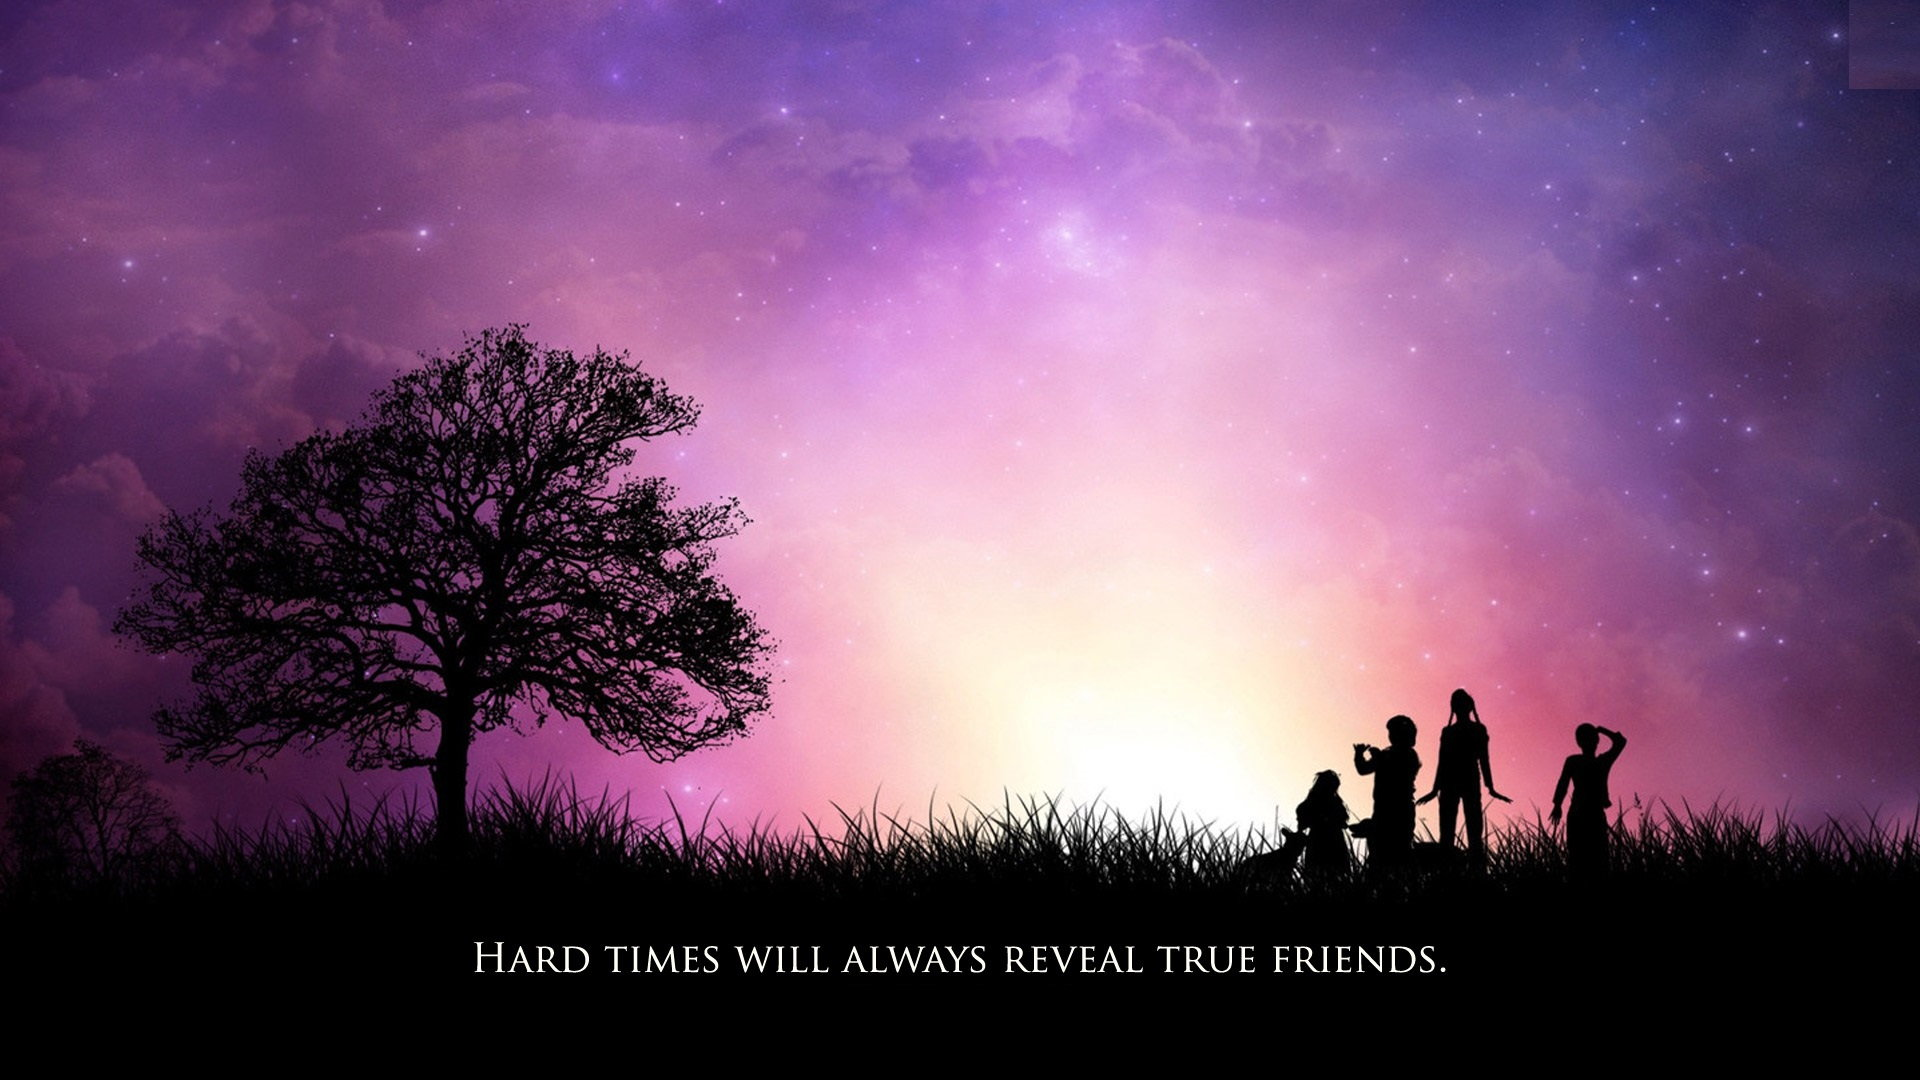 Friendship Quotes HD Wallpaper High Definition 1920x1080